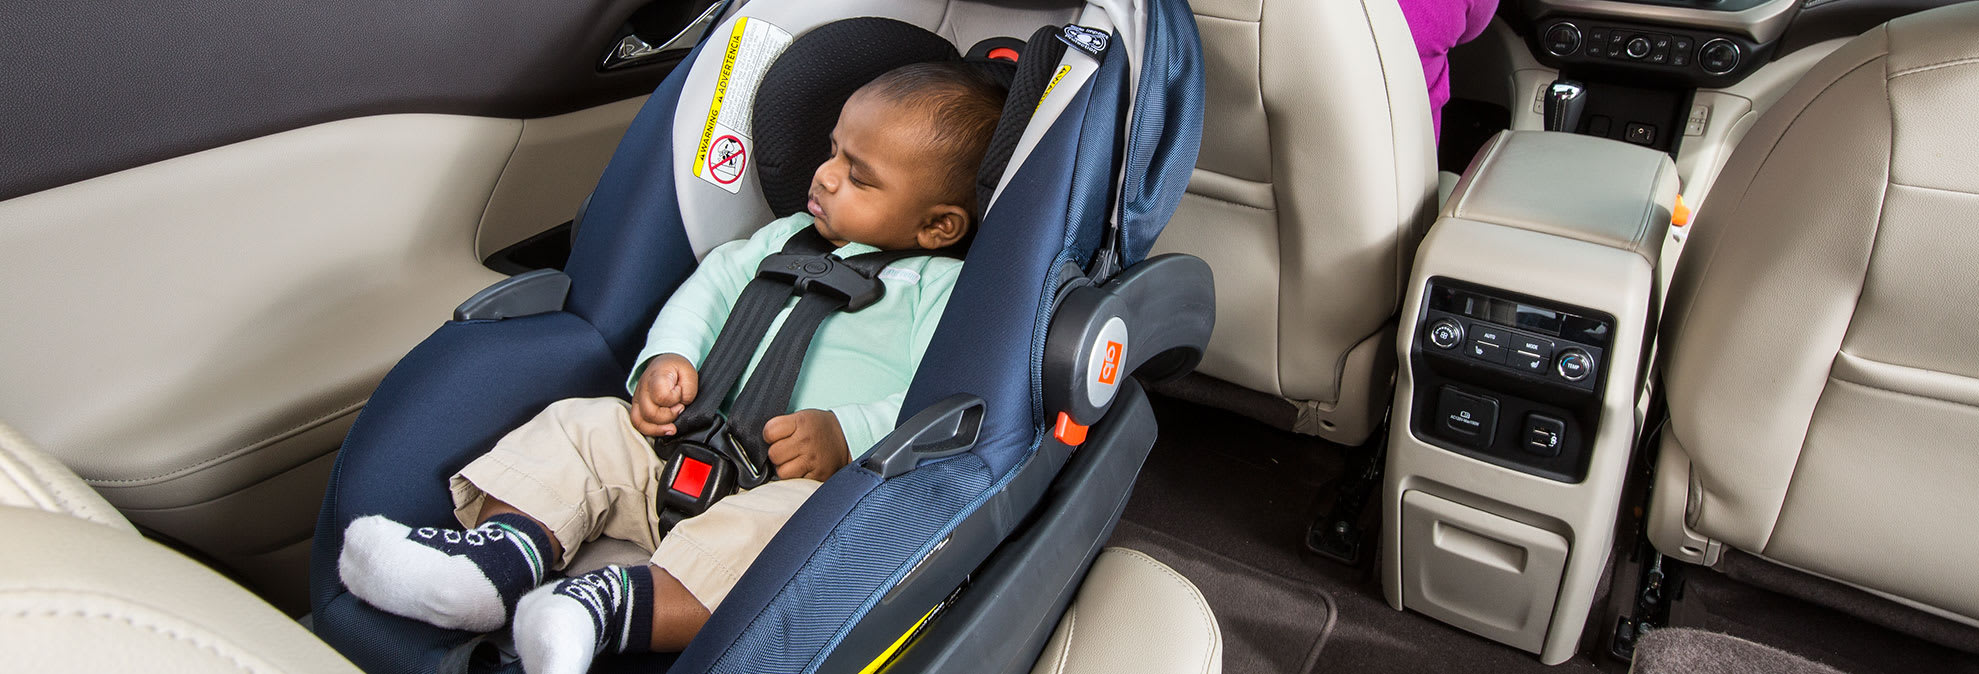 Infant Stroller Used Do 39;s And Dont 39;s Of Using An Infant Car Seat Consumer Reports